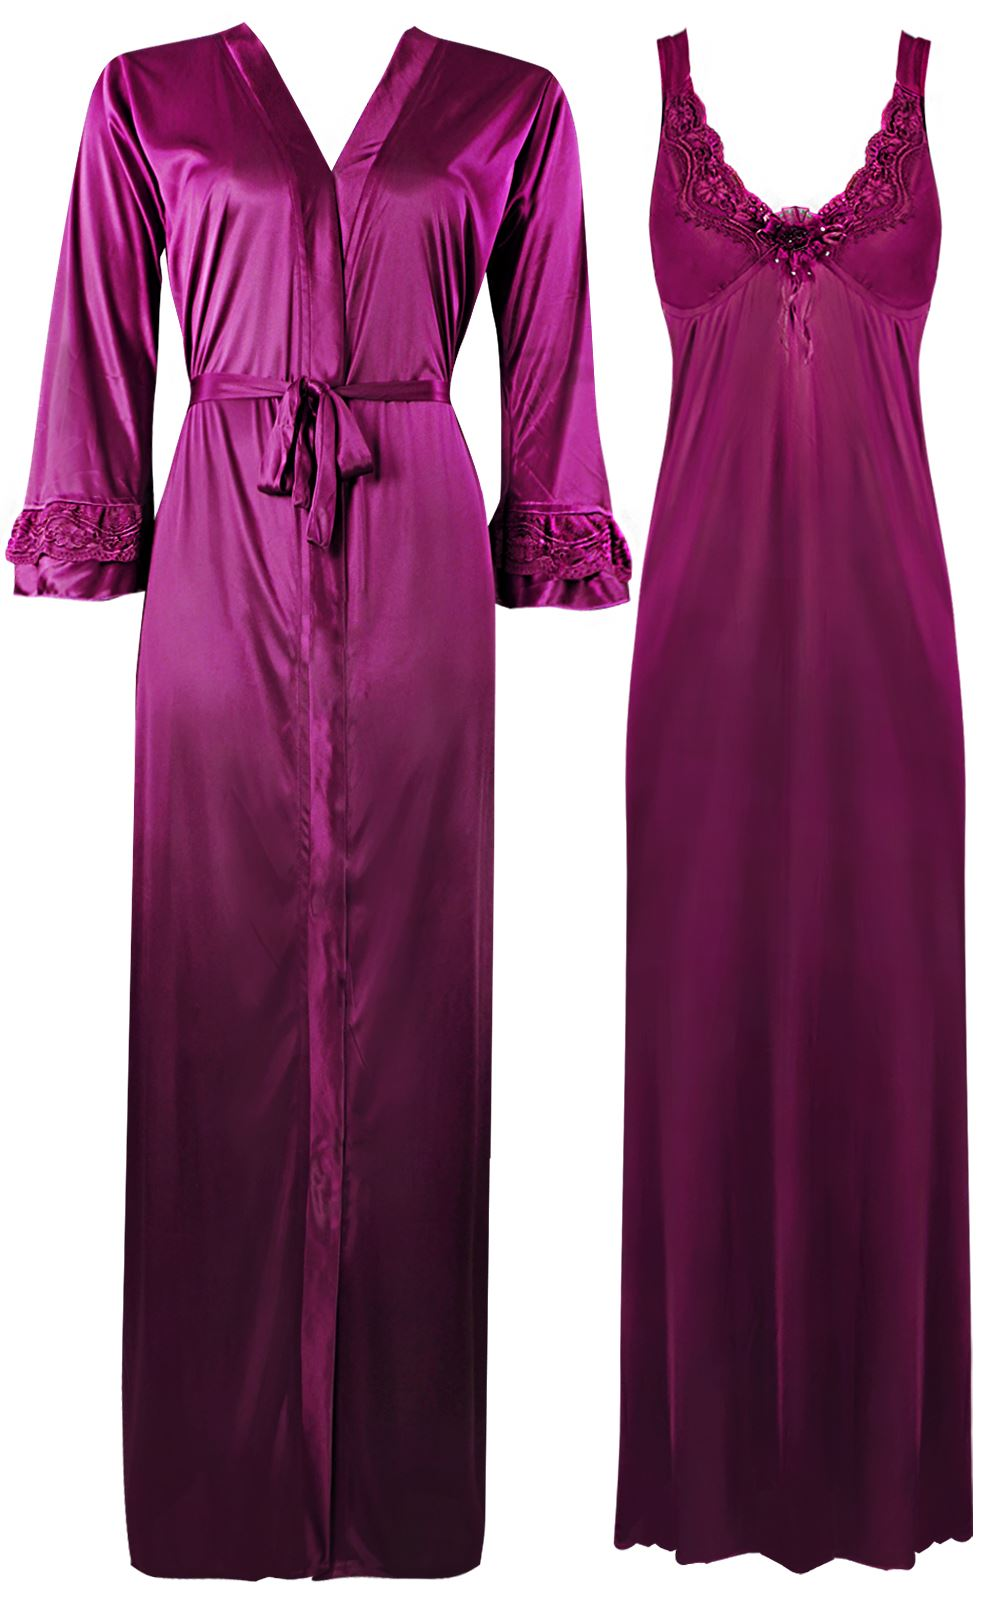 Color: Wine 2 Piece Satin Nighty and Robe With Long Sleeve Dressing Gown Size: XL